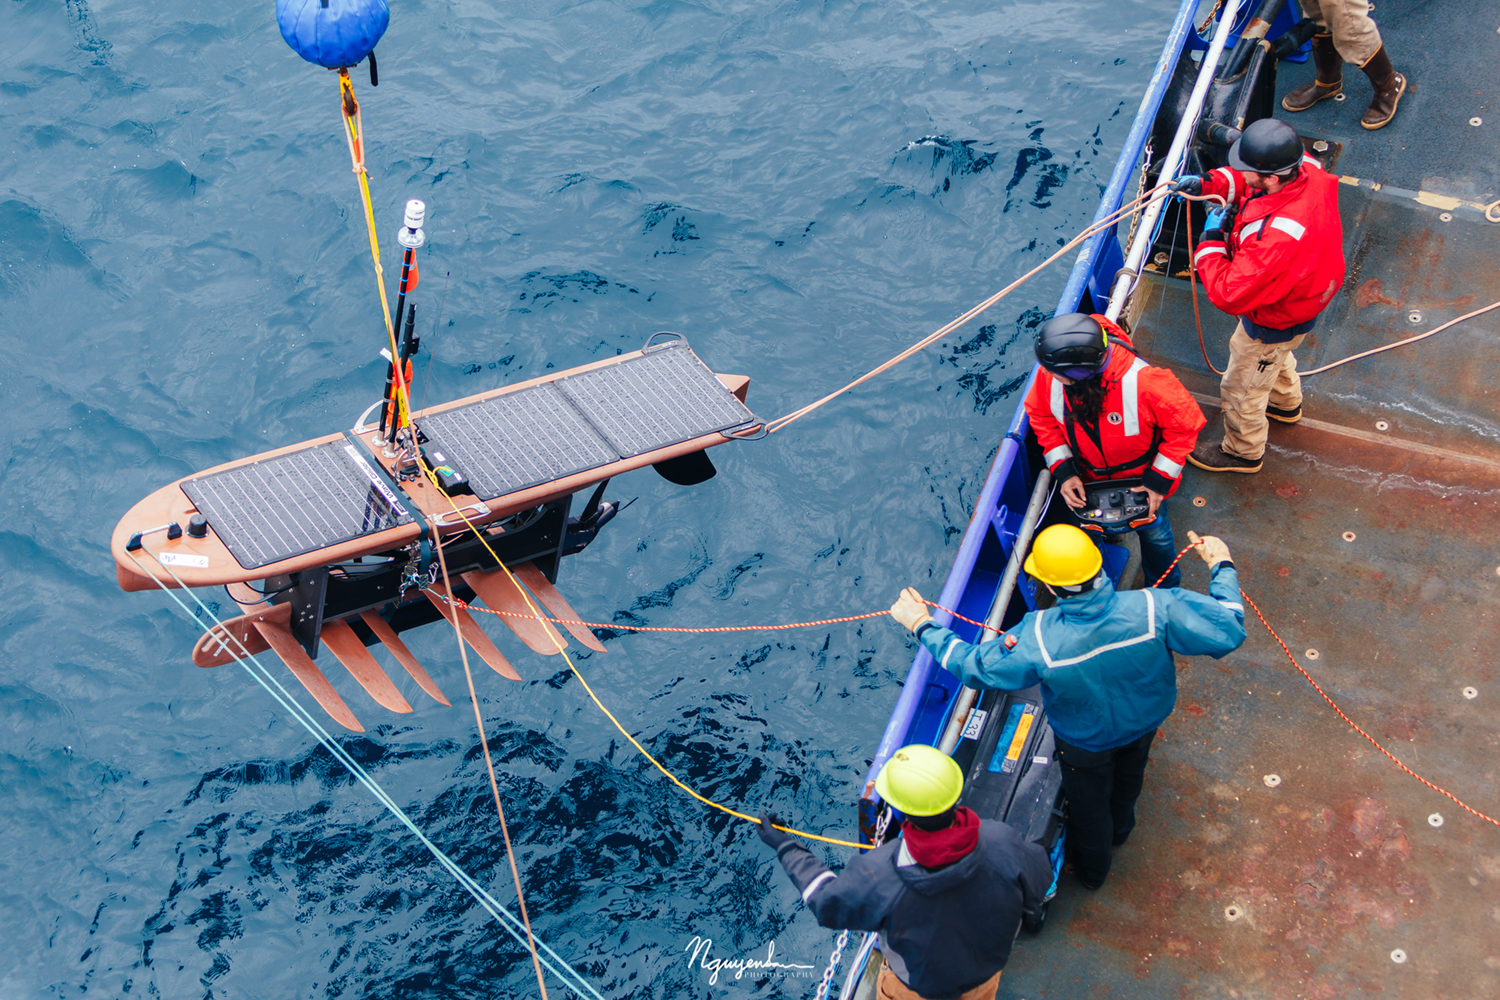 workers on barge lowering The Wave Glider surfboard down in the ocean